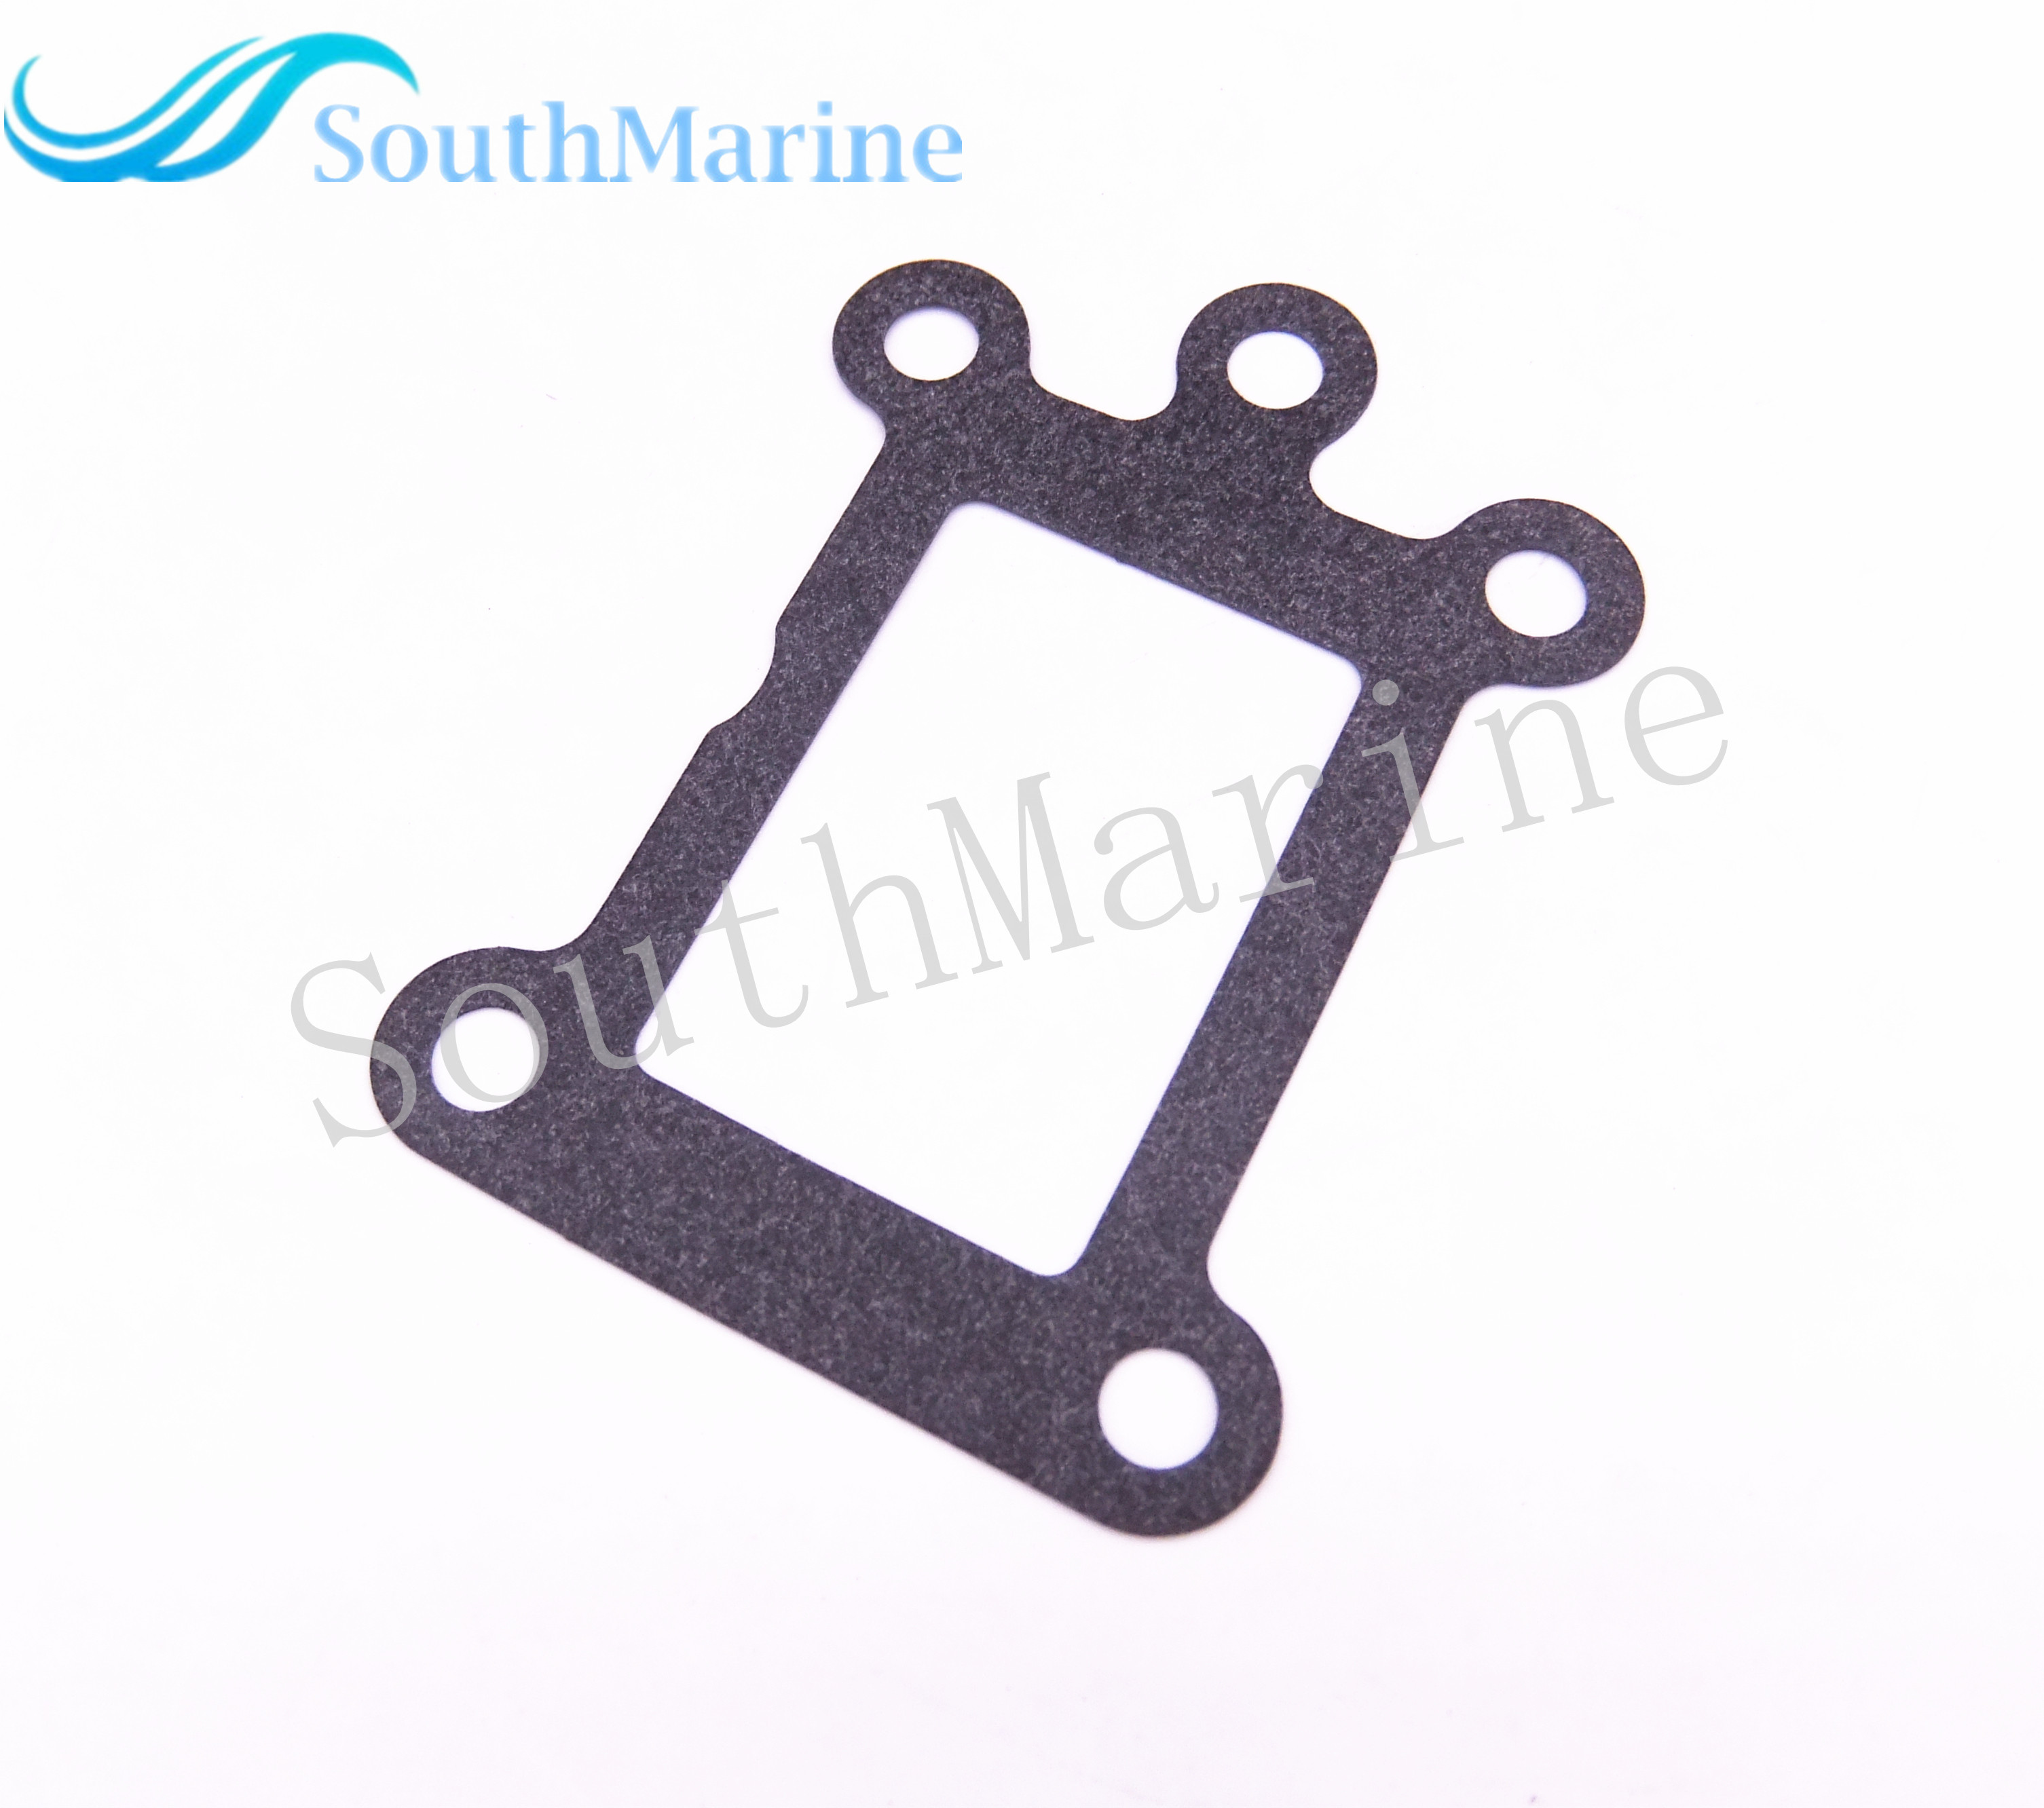 Outboard Engine 6A1-13621-A0-00 Valve Seat Gasket for Yamaha 2-Stroke  2HP Boat Motor Free Shipping